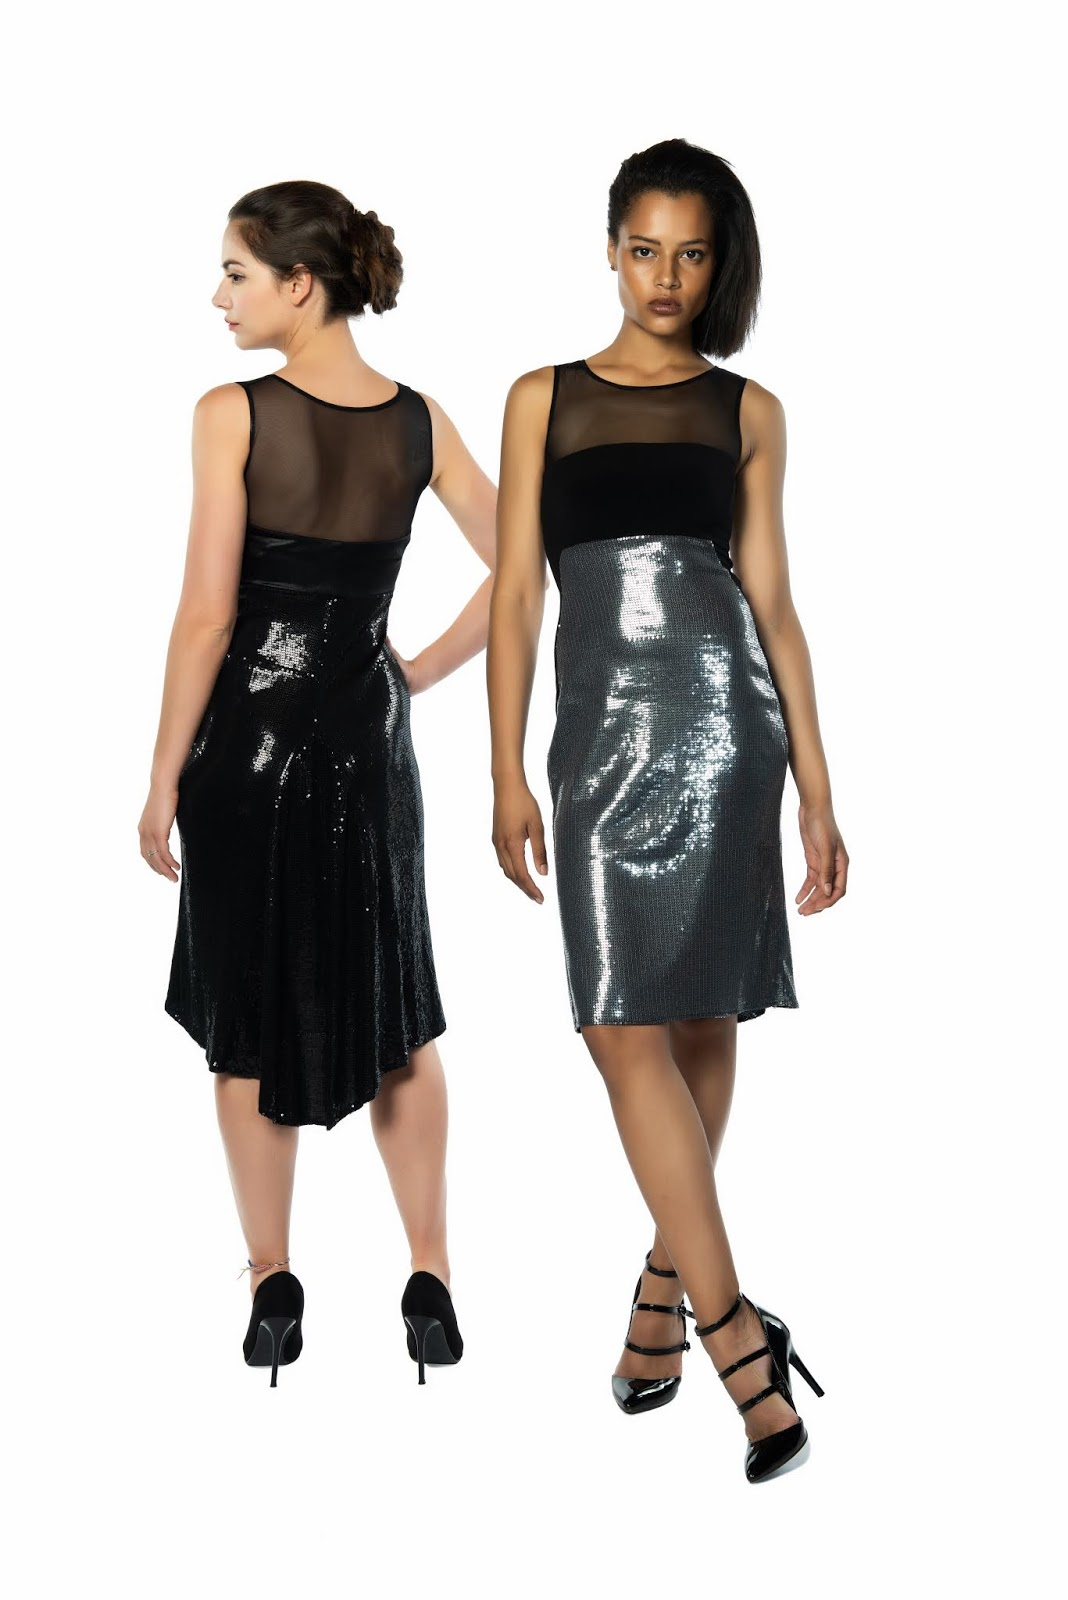 6a6eb02b19f Choose the best online store for buying Argentine tango clothing items